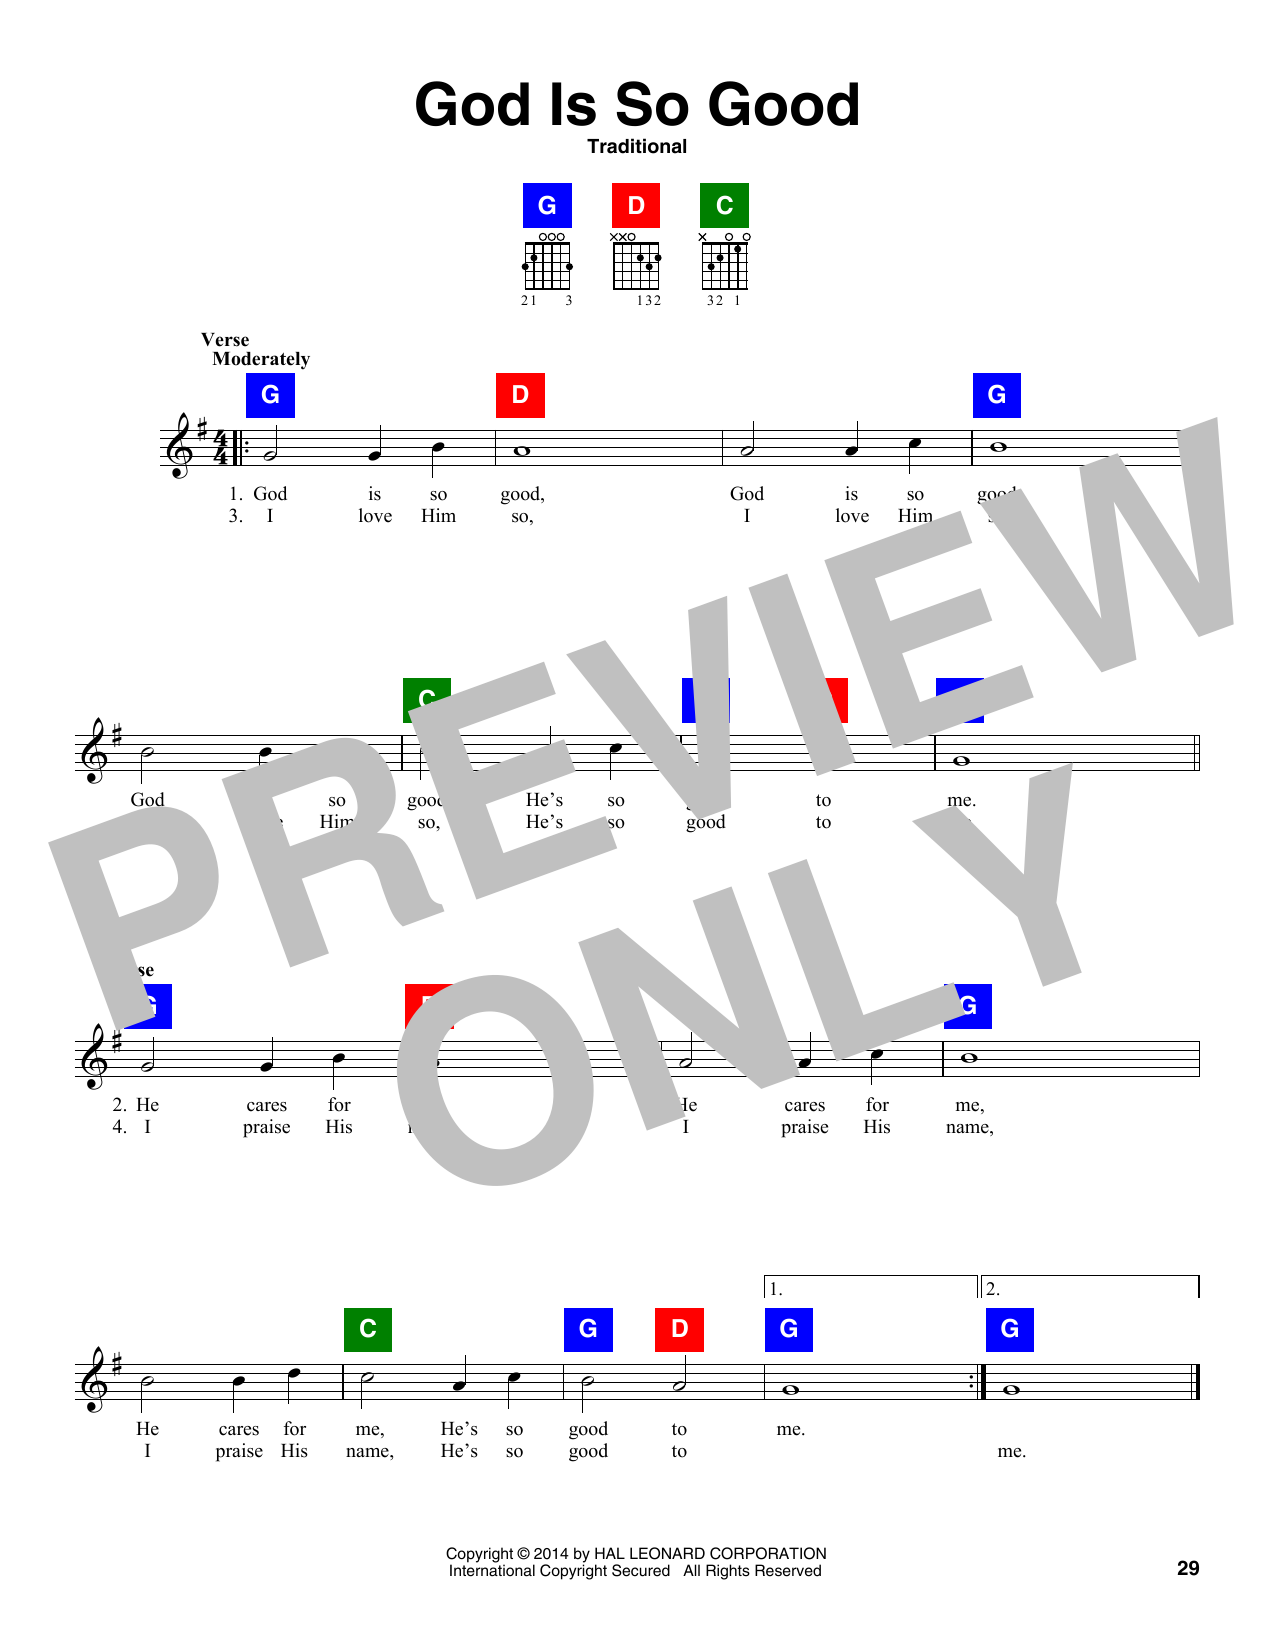 Traditional God Is So Good sheet music notes and chords. Download Printable PDF.